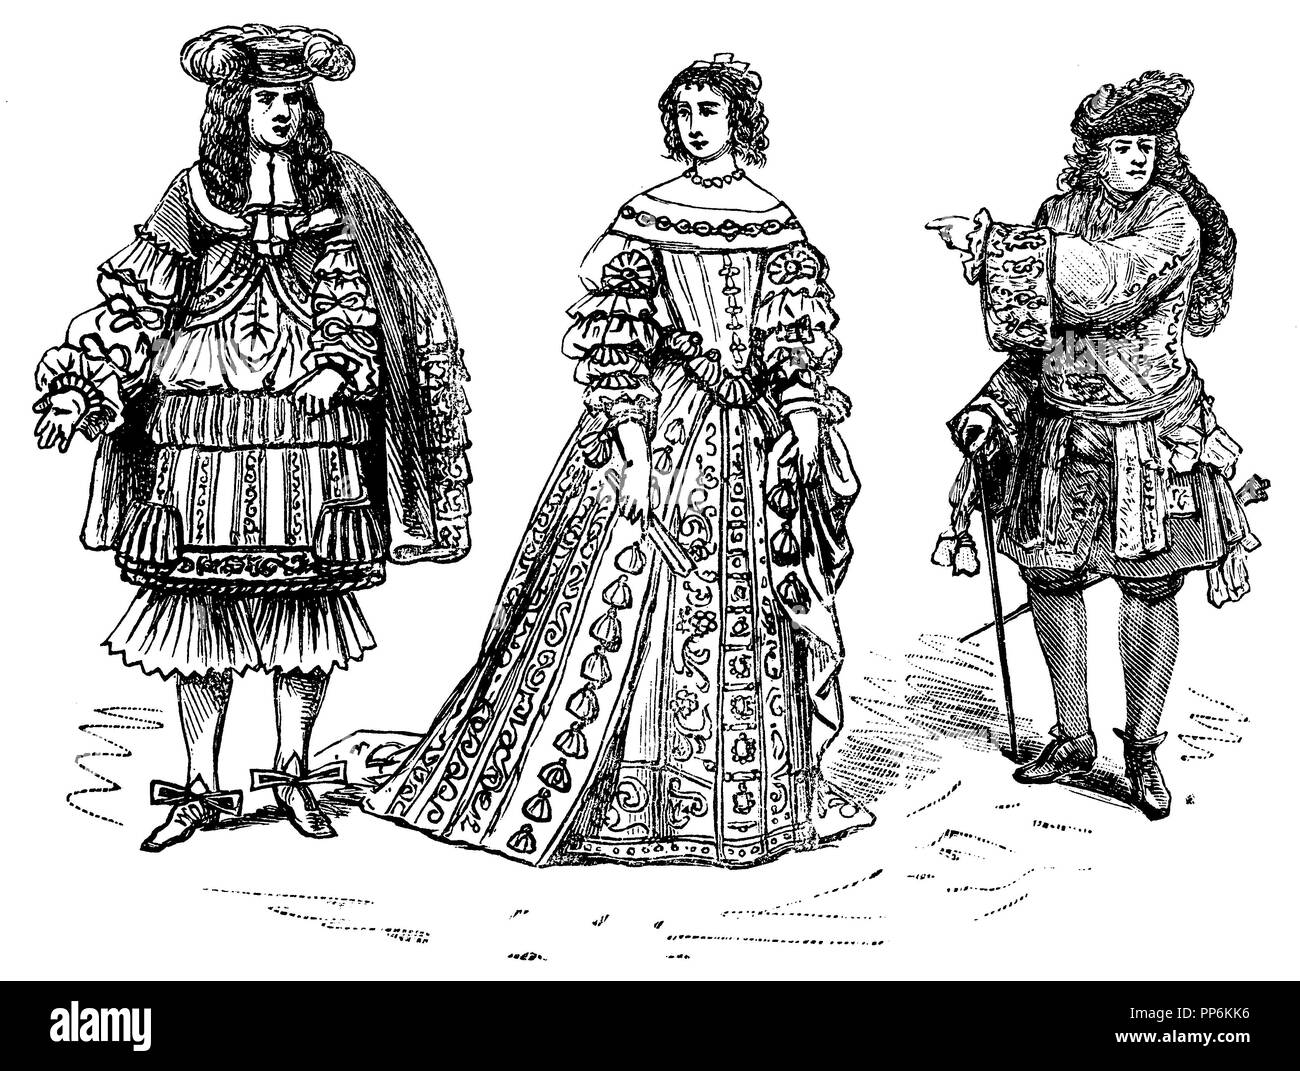 Allongetracht (1650-1720), left: Louis XIV and his wife, Maria Theresia, 1660, right: 1700, anonym  1896 Stock Photo